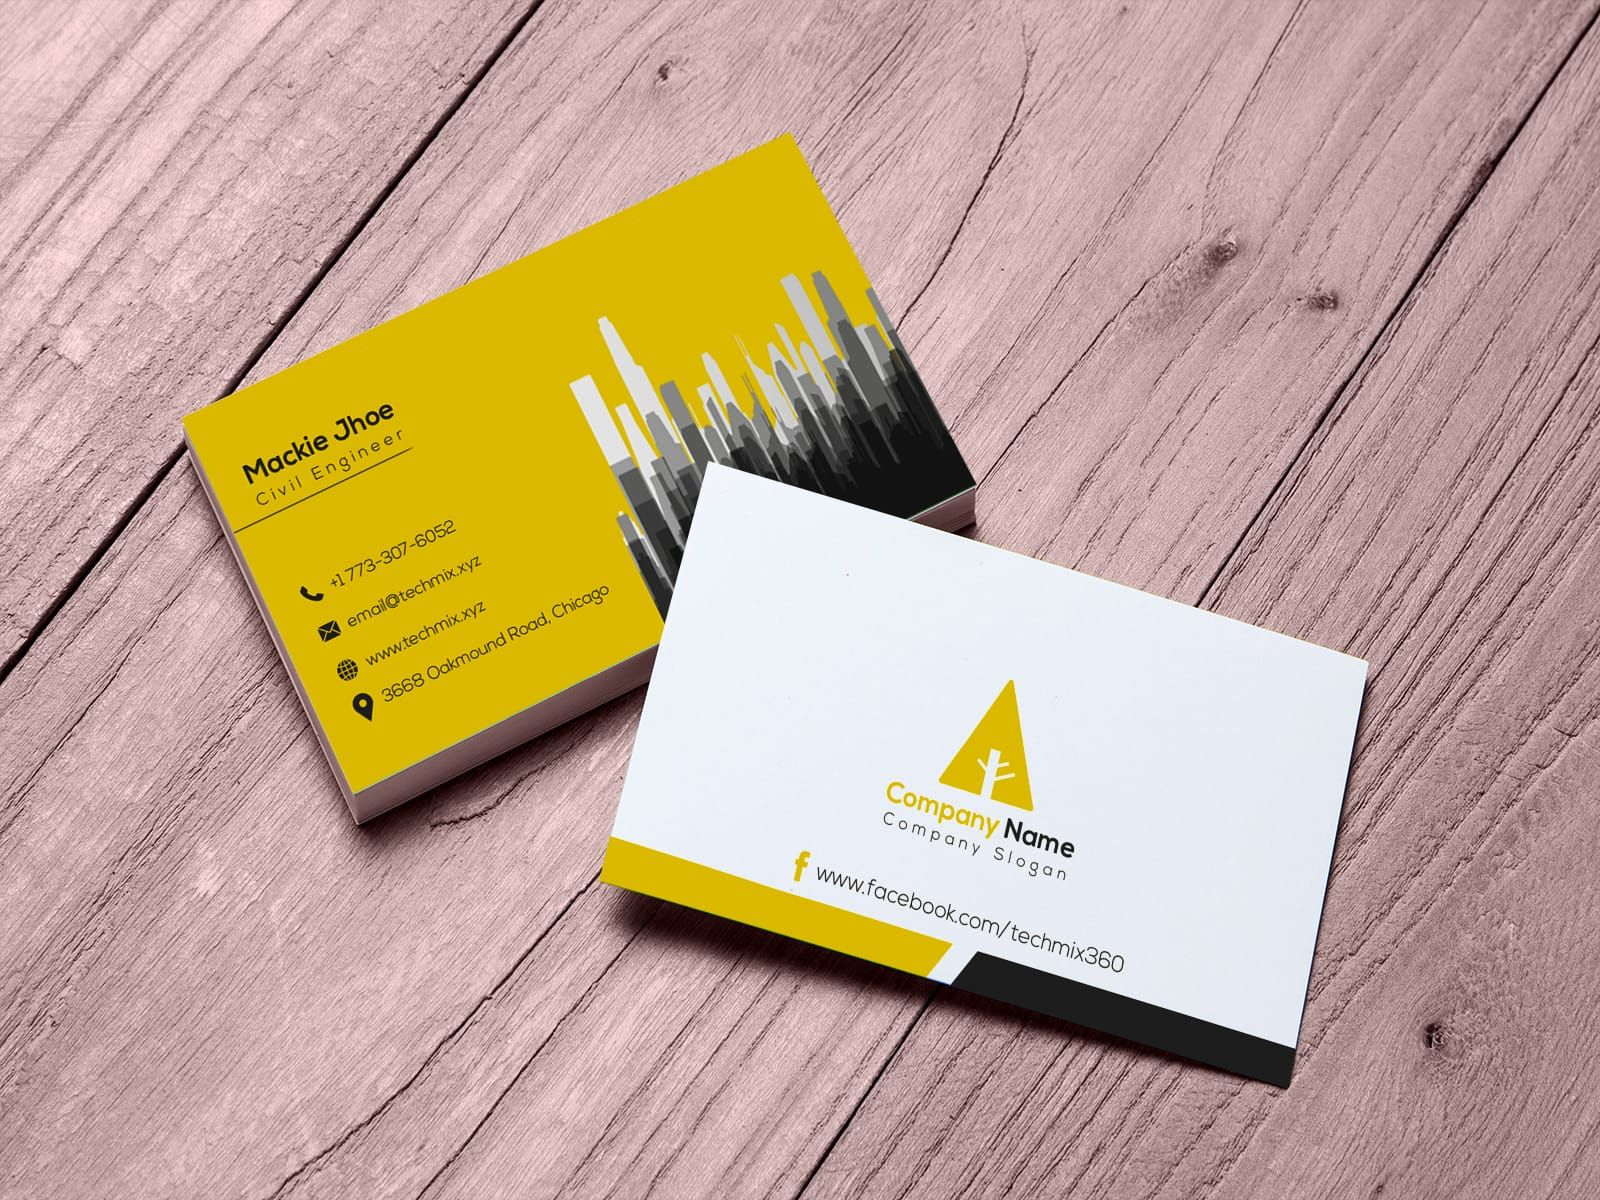 Civil Engineer Business Card Design With Images Visiting Cards